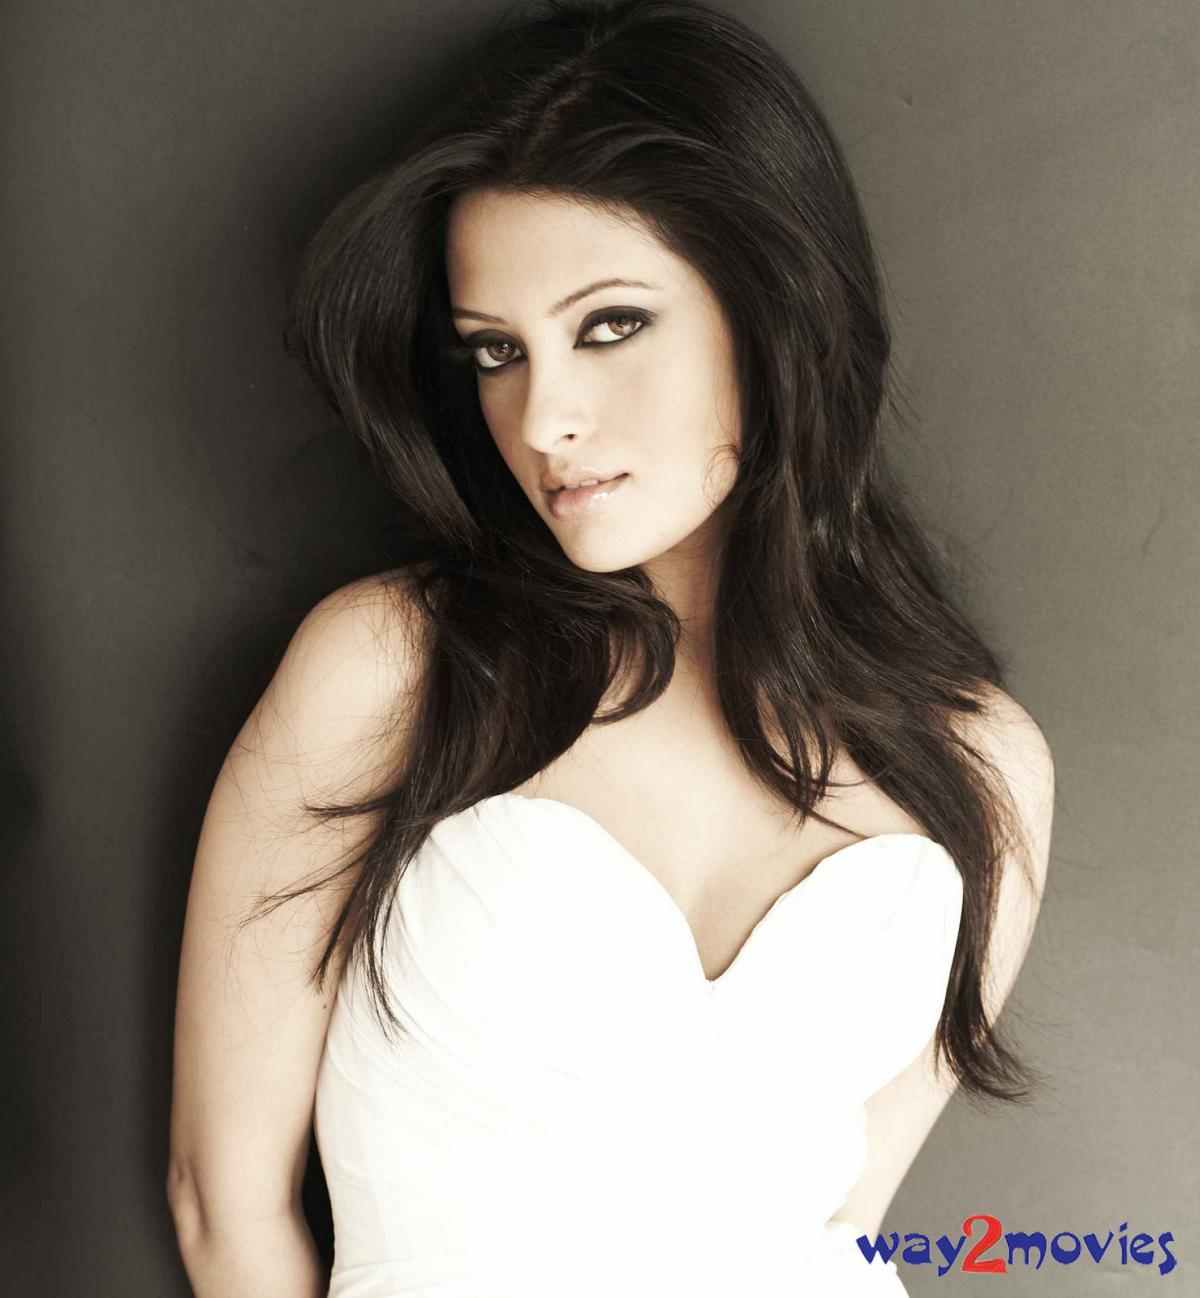 Indian Actress Hot Pics: Riya Sen Hot Pics